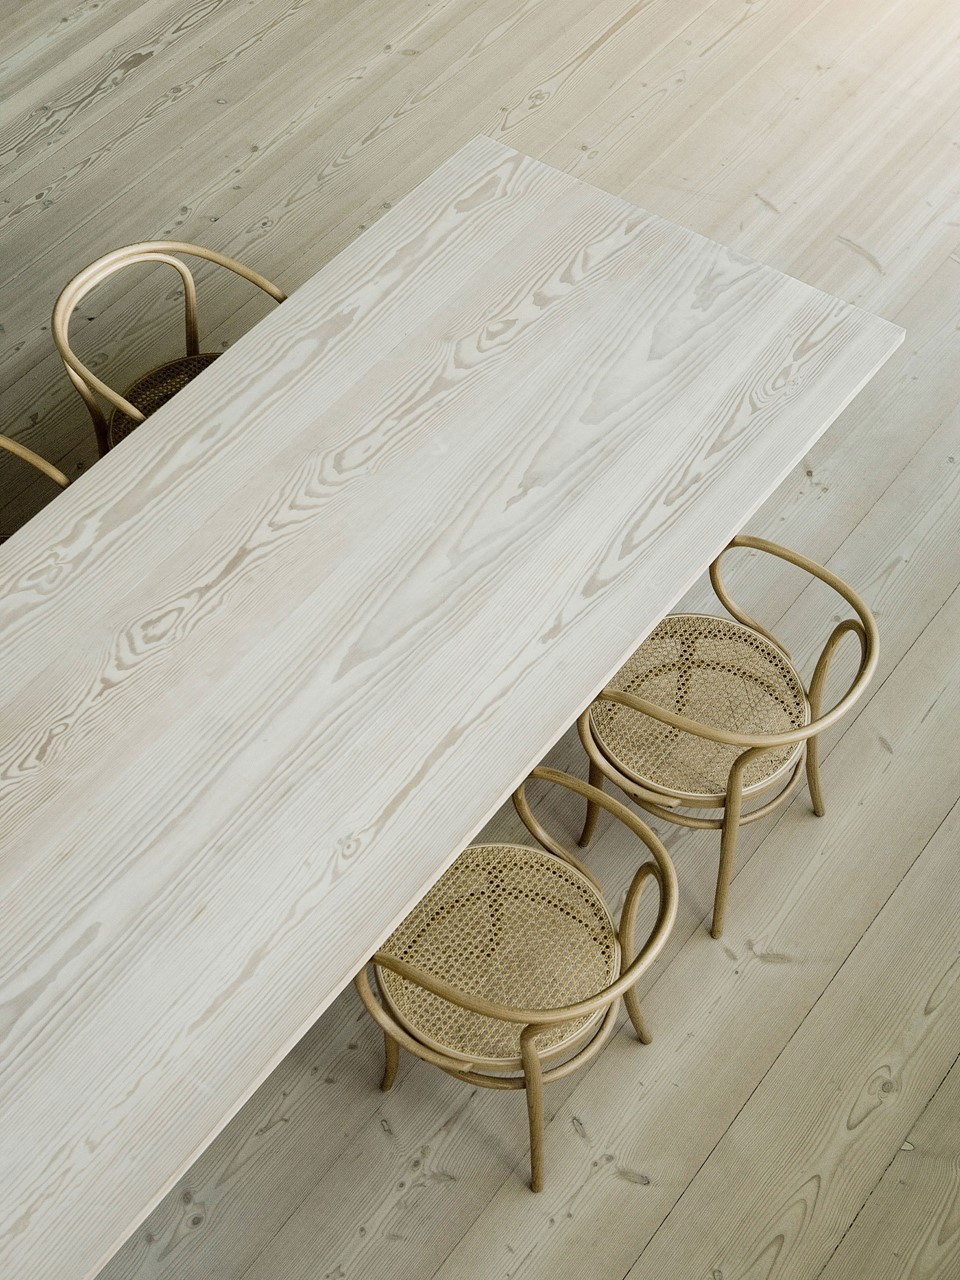 Furniture Planks